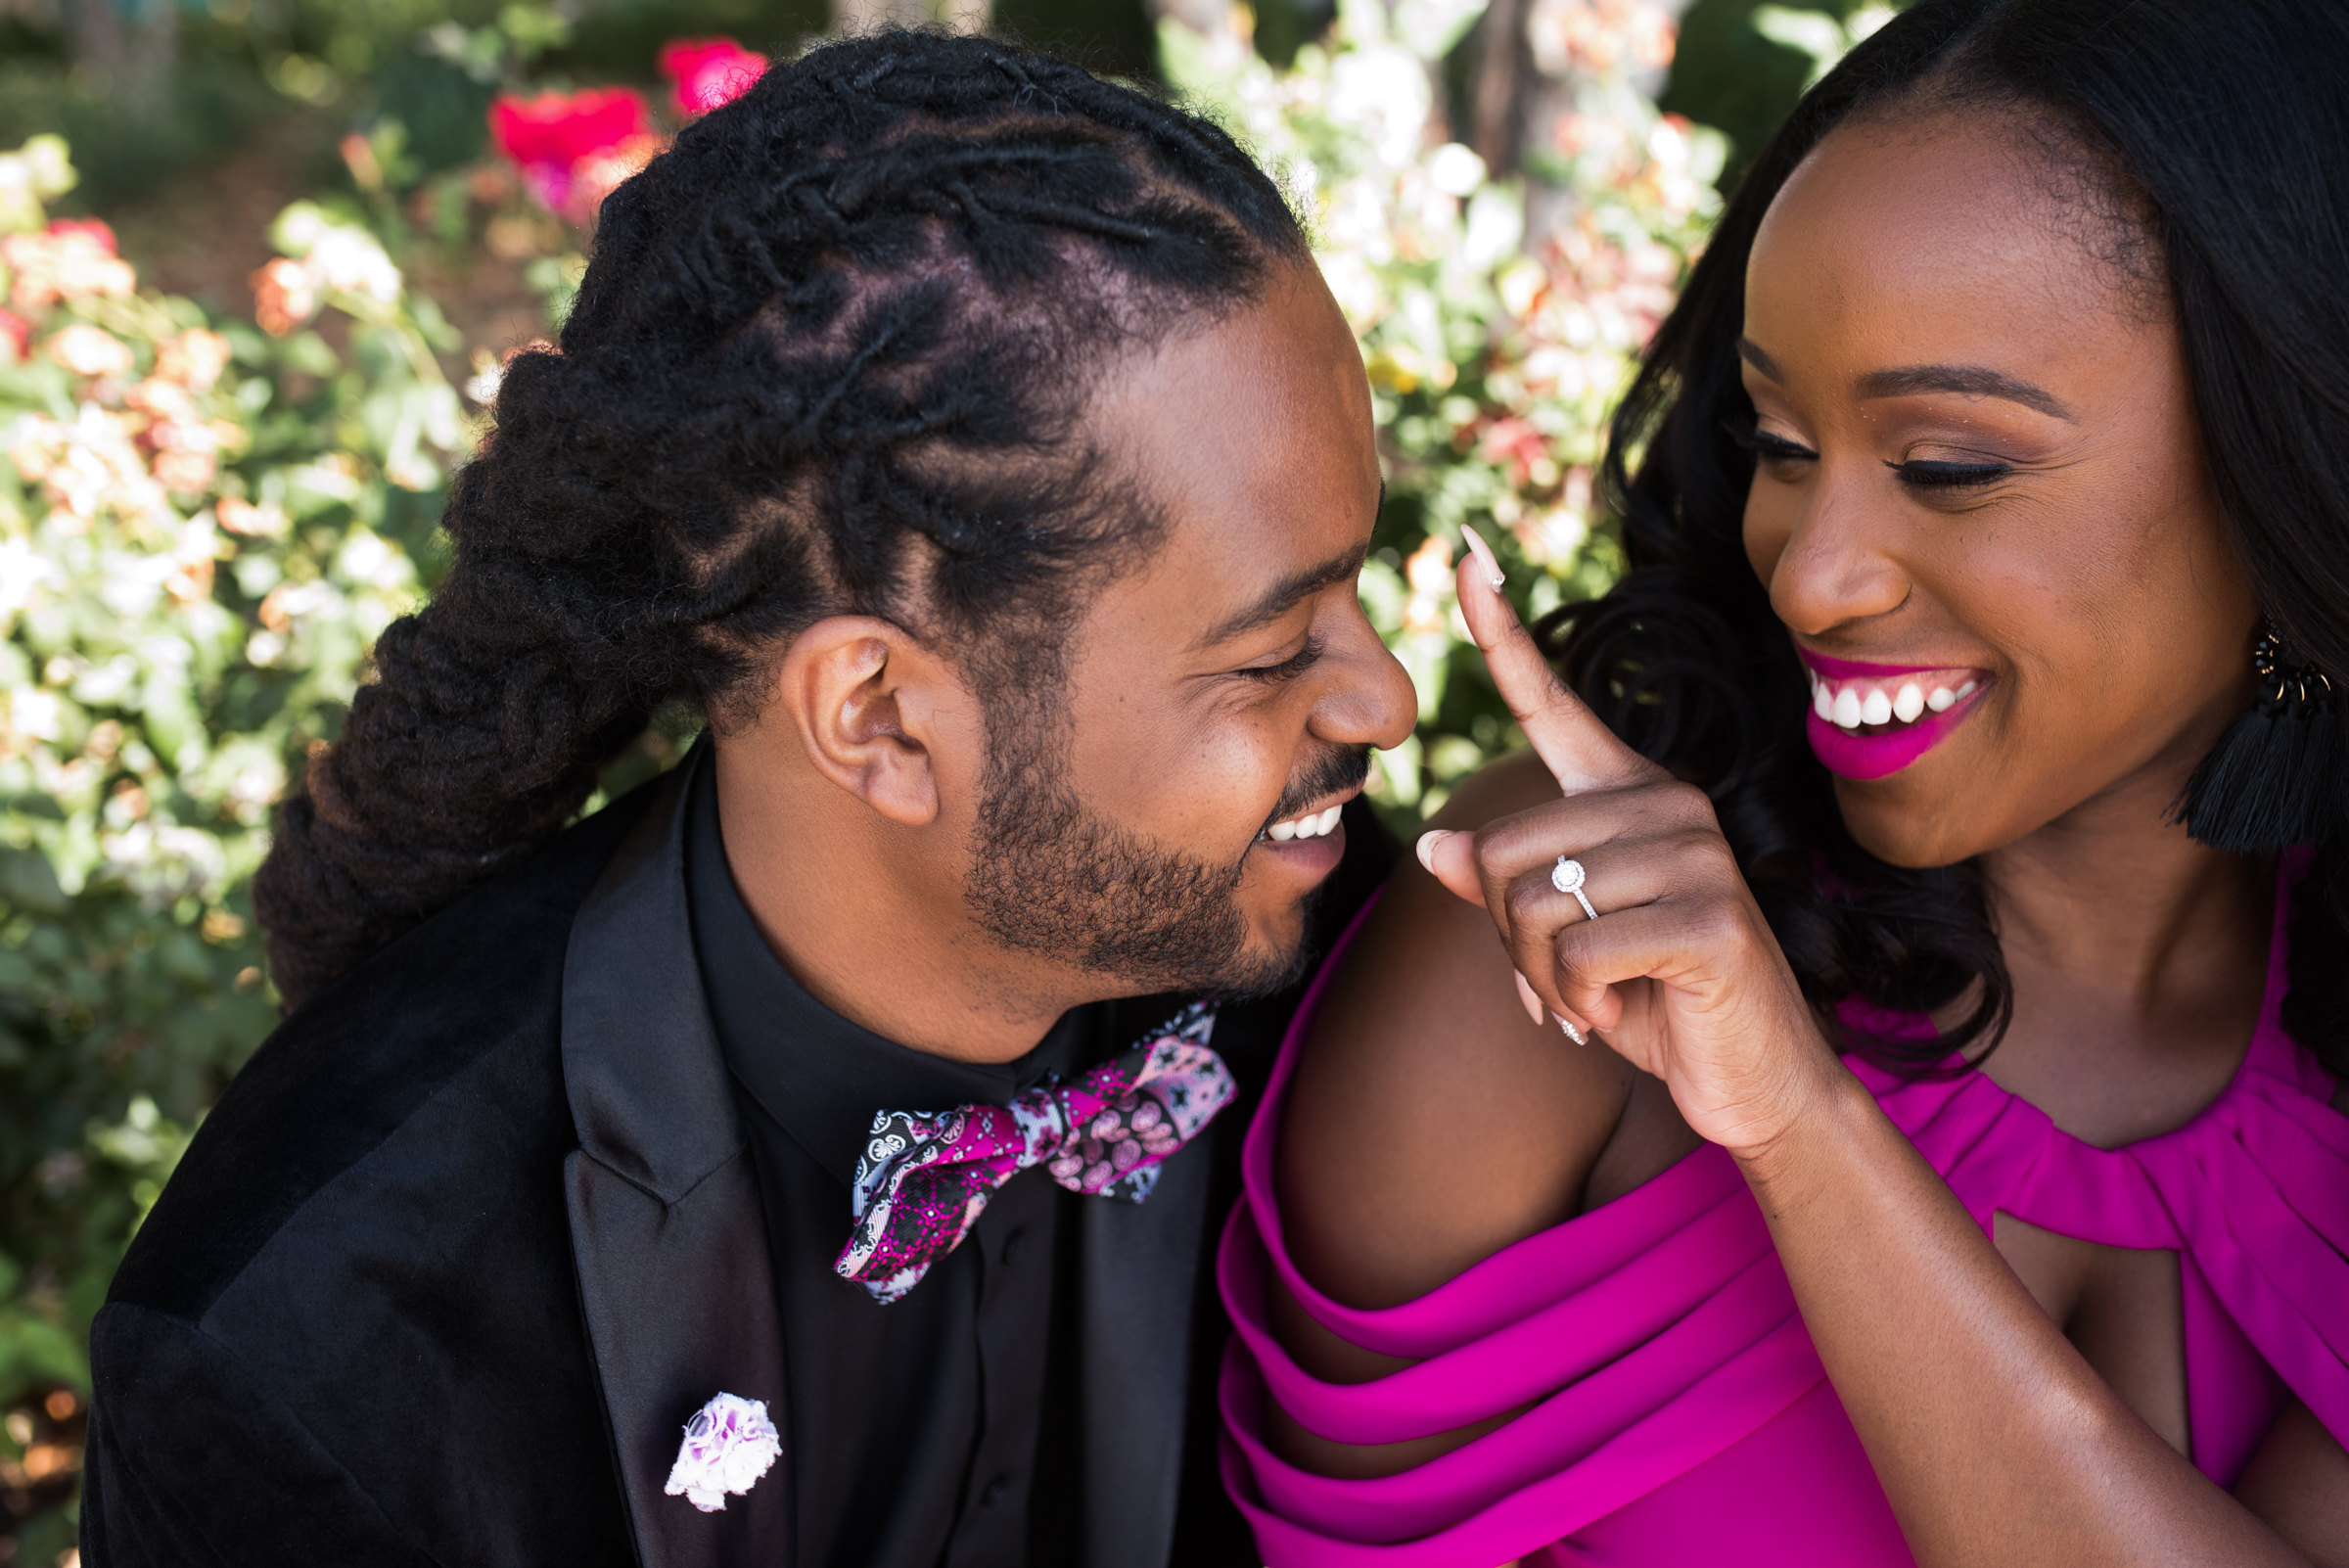 Sweet engagement couple moment - photo by Ashleigh Bing Photography